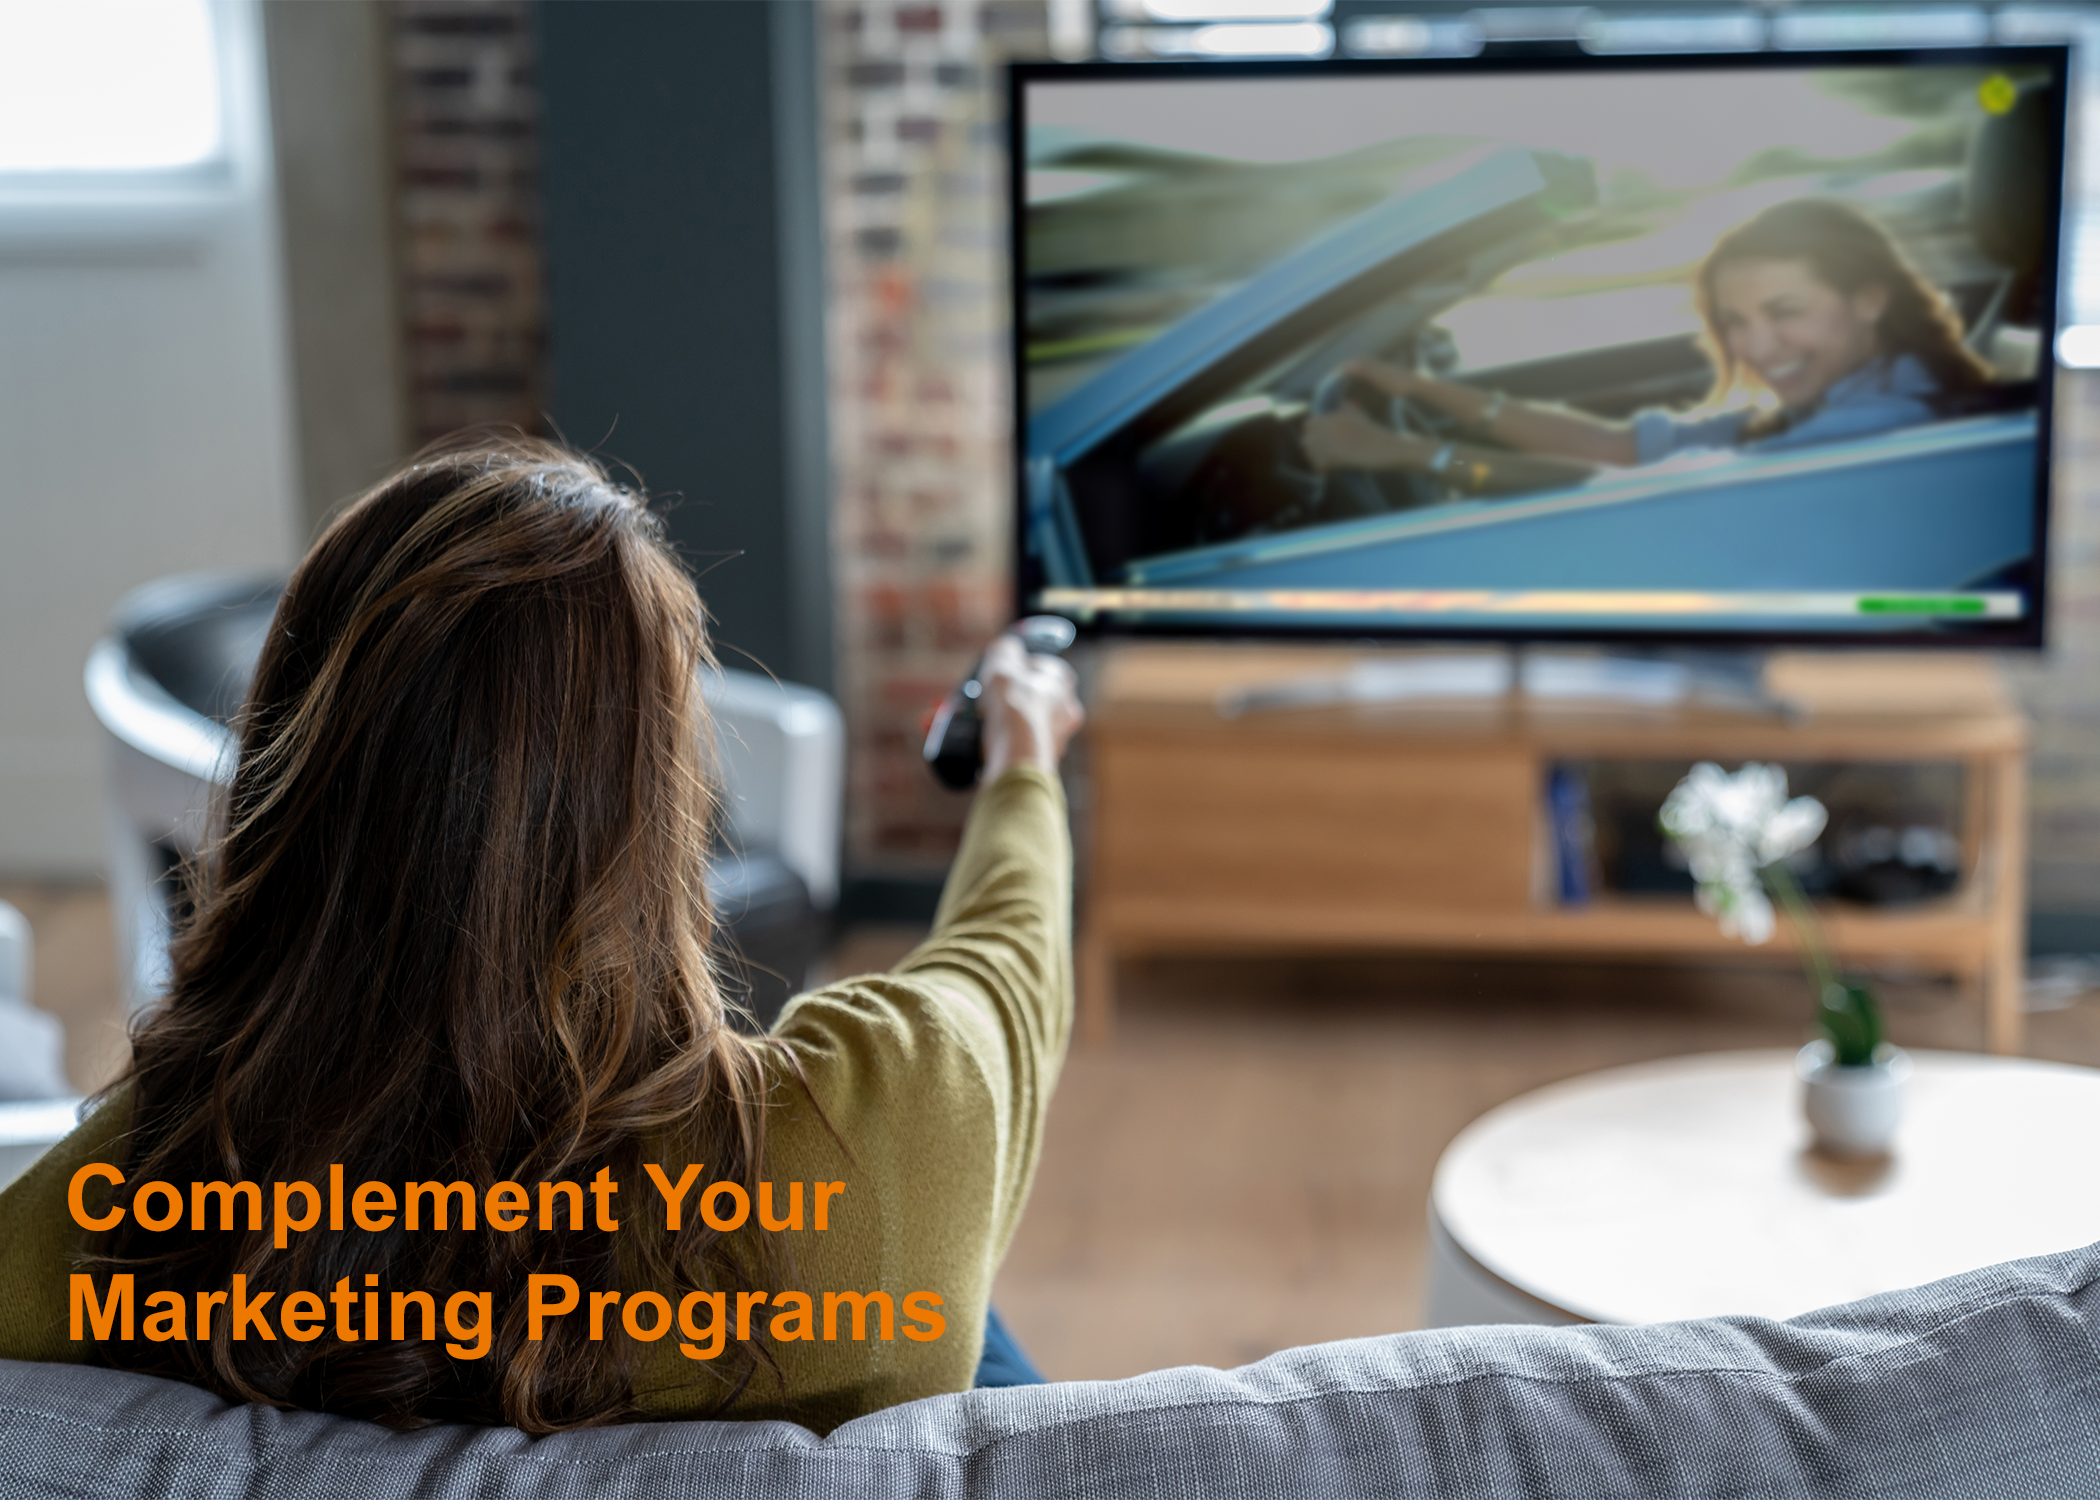 Complement Your Marketing Programs